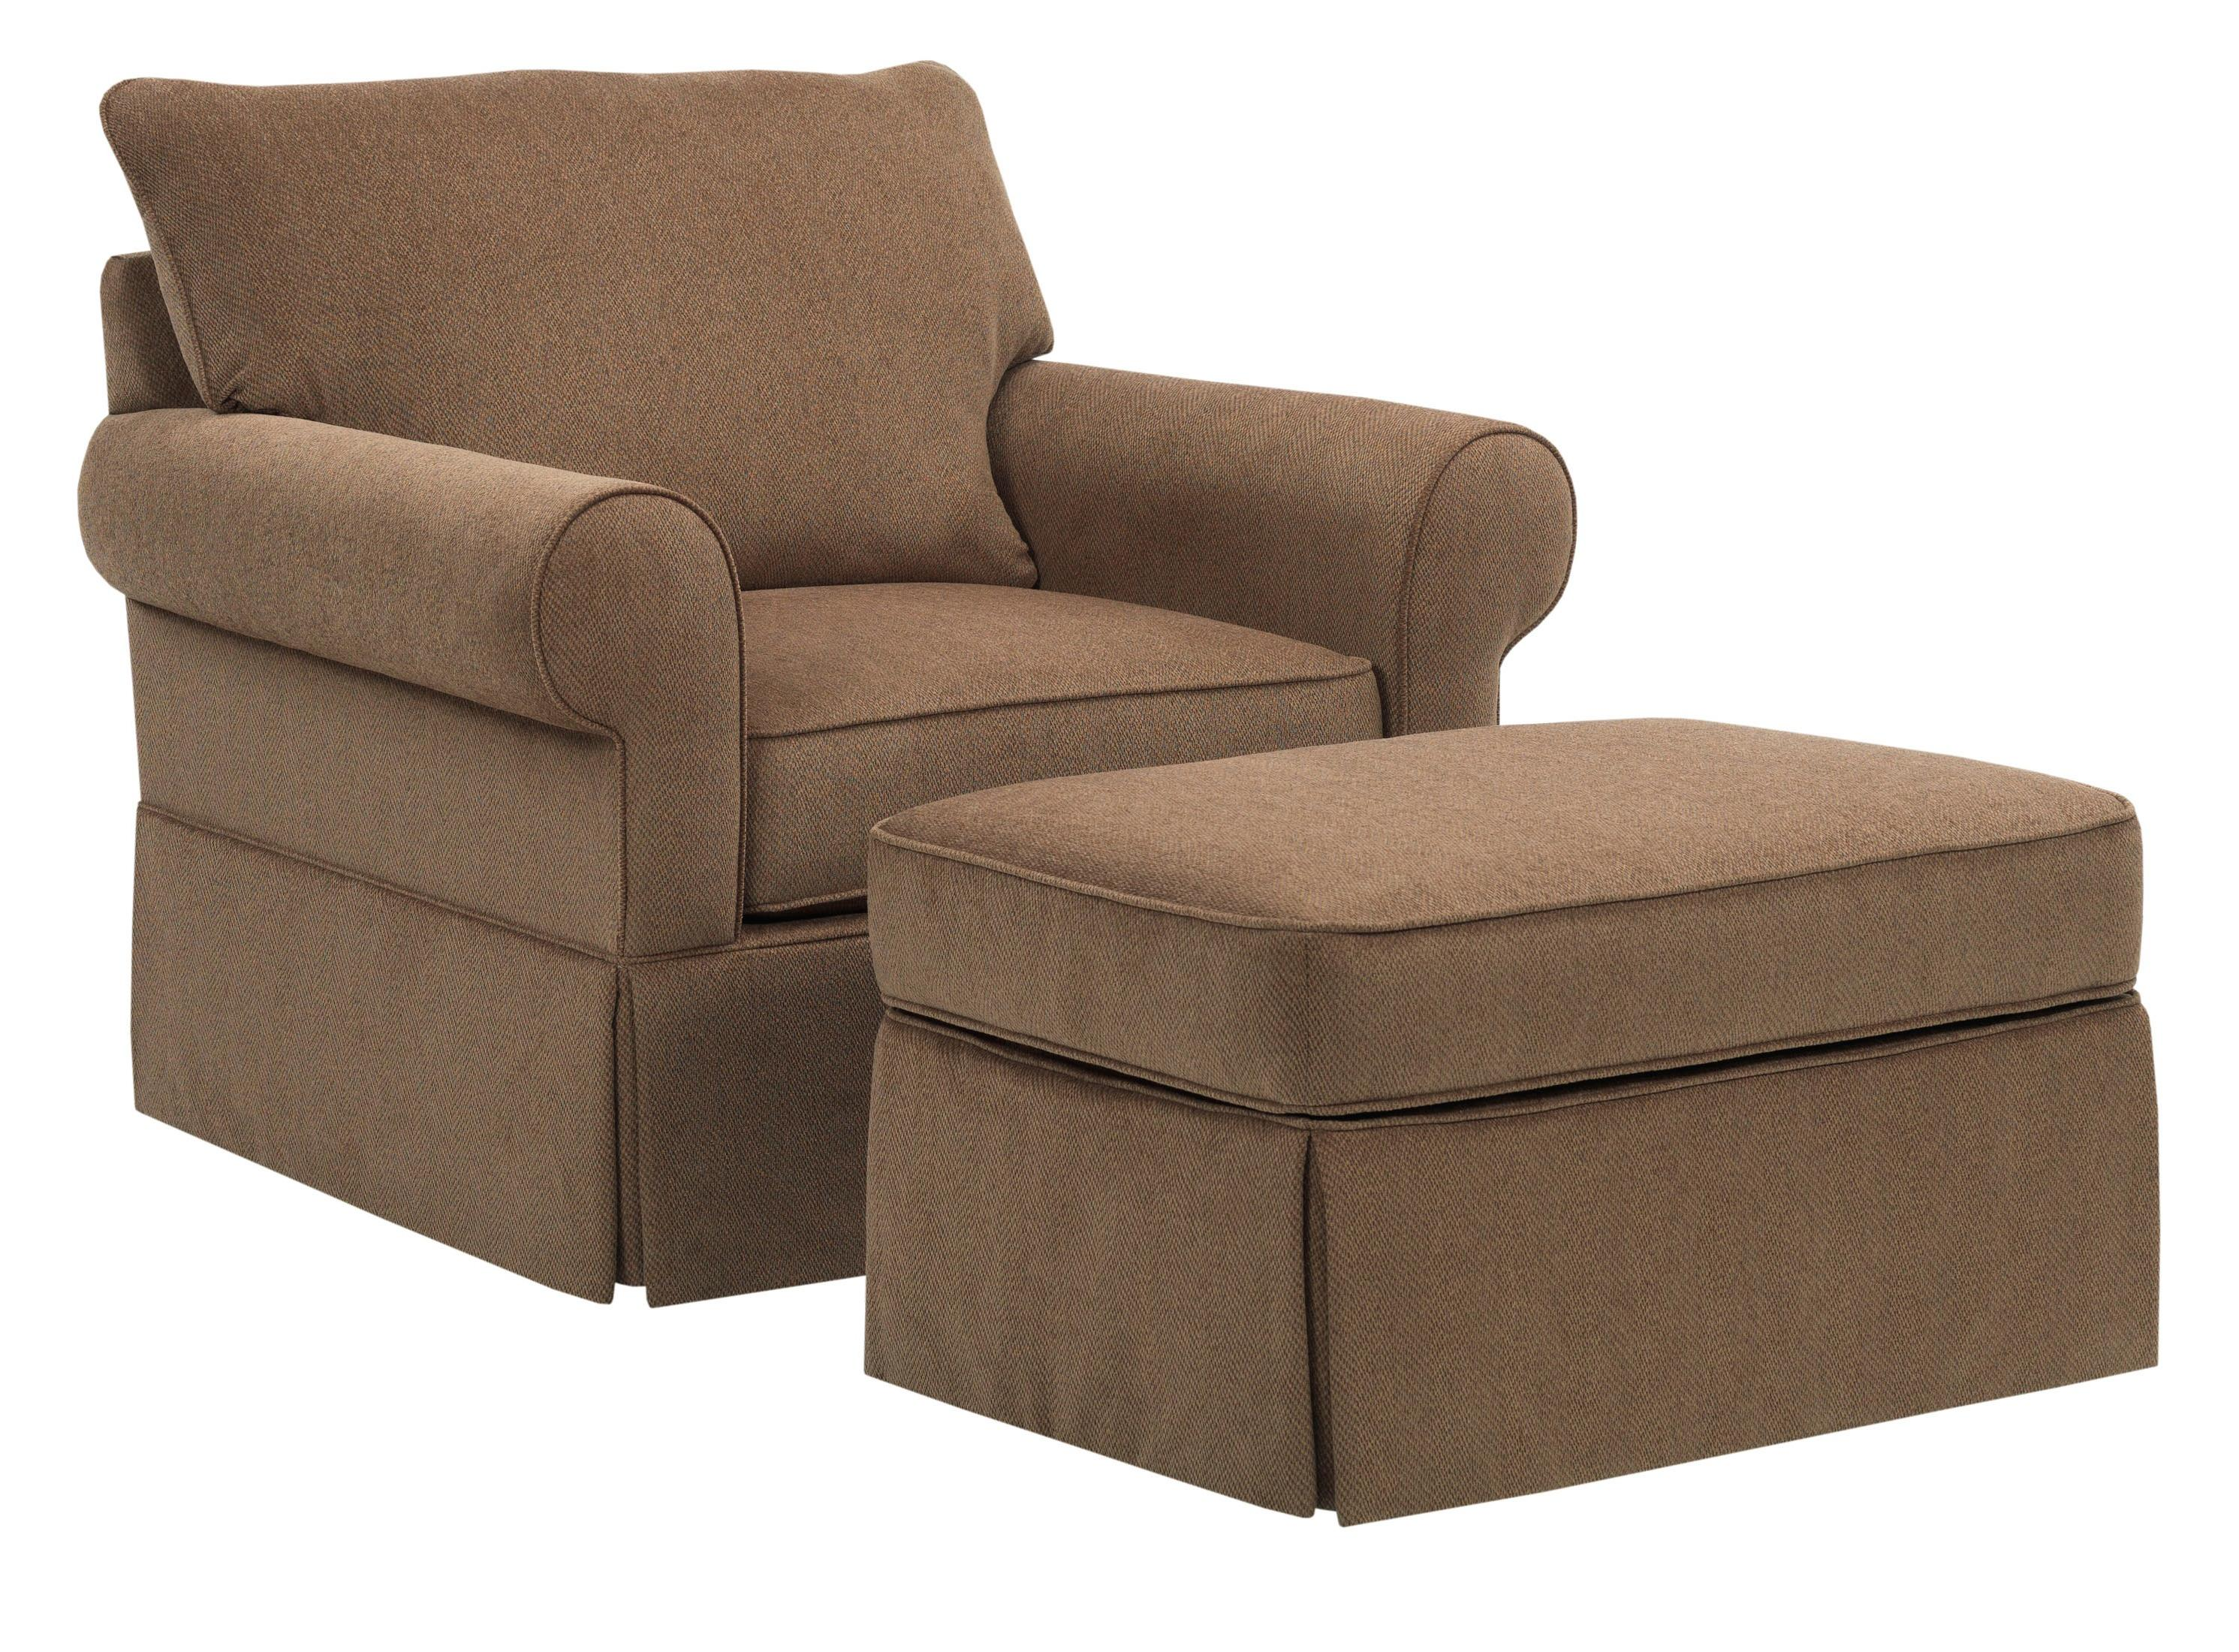 Broyhill Furniture Uptown Traditional Chair and Ottoman Set - Item Number: 4235-0+5-4075-84